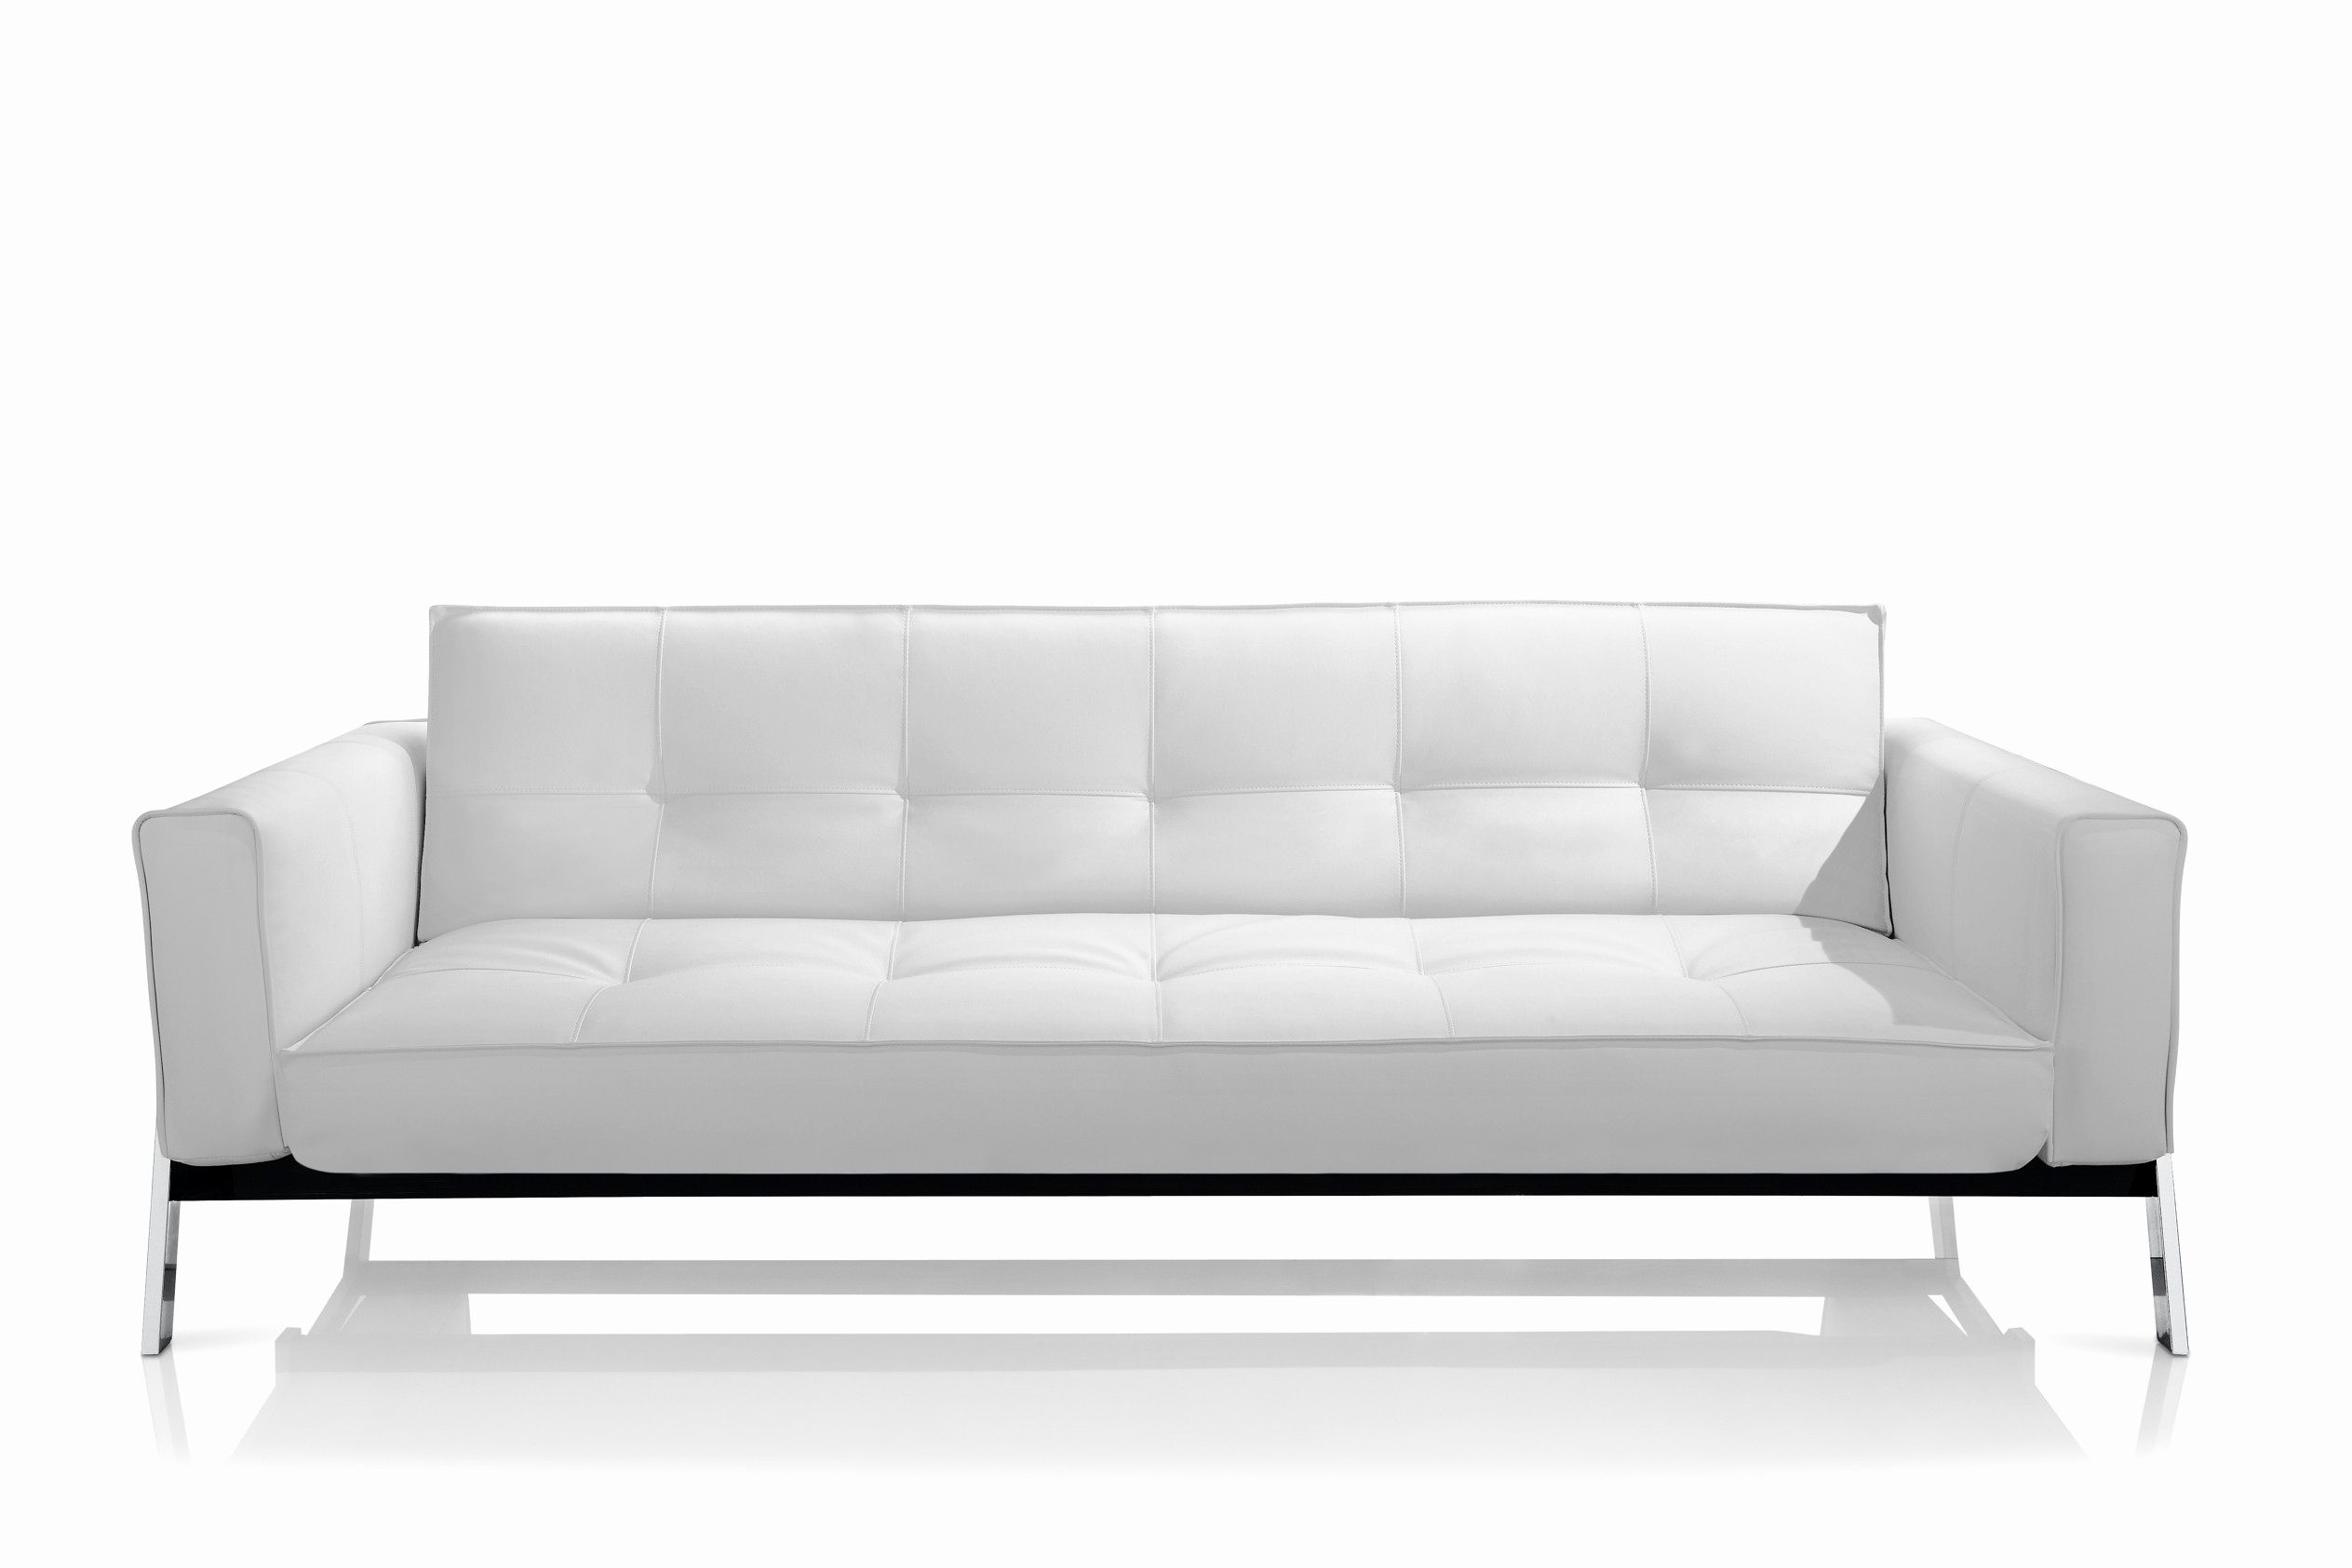 Good Leather Office Sofas Shot Perfect White Couches 36 within sizing 2527 X 1685